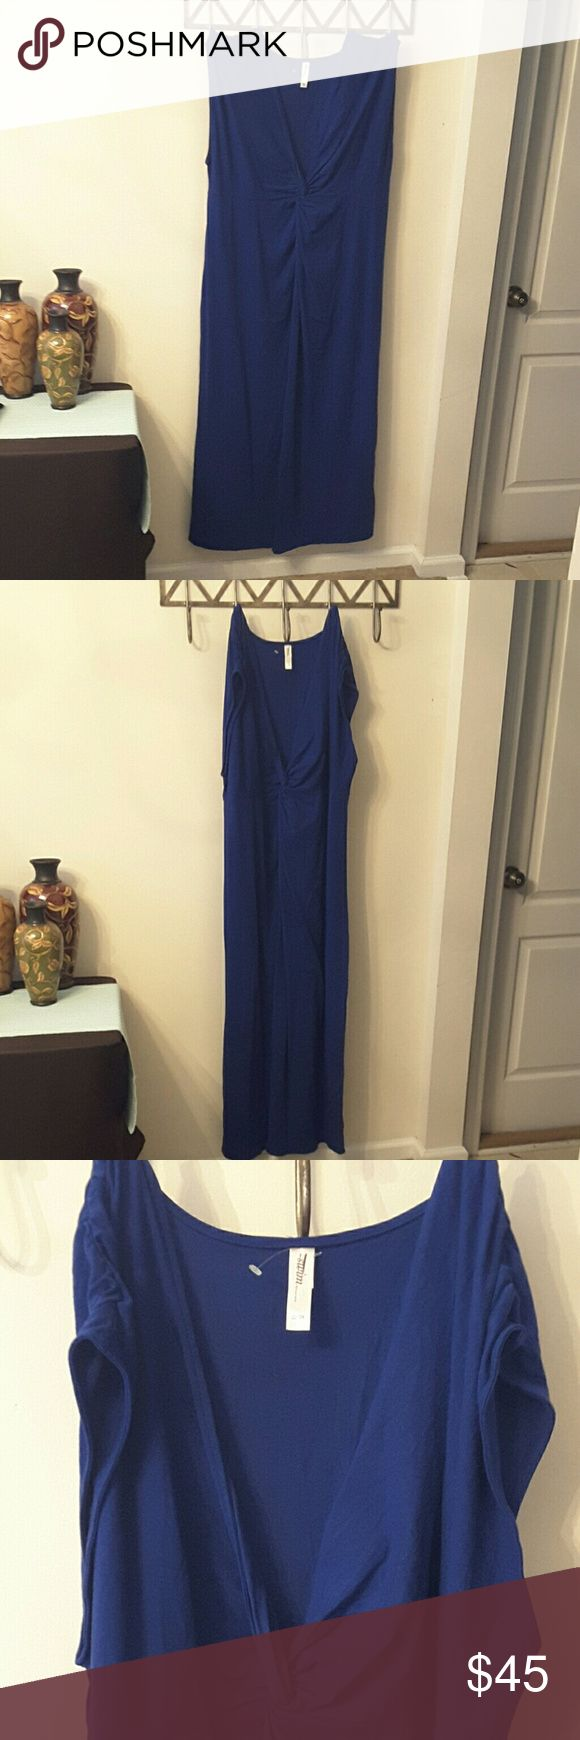 Royal Blue Maxi Swim Cover up Dress Royal Blue, stretchy, maxi dress, coverup, NWOT, bought but was little too big... I wear 18w/20w Lane Bryant Dresses Maxi